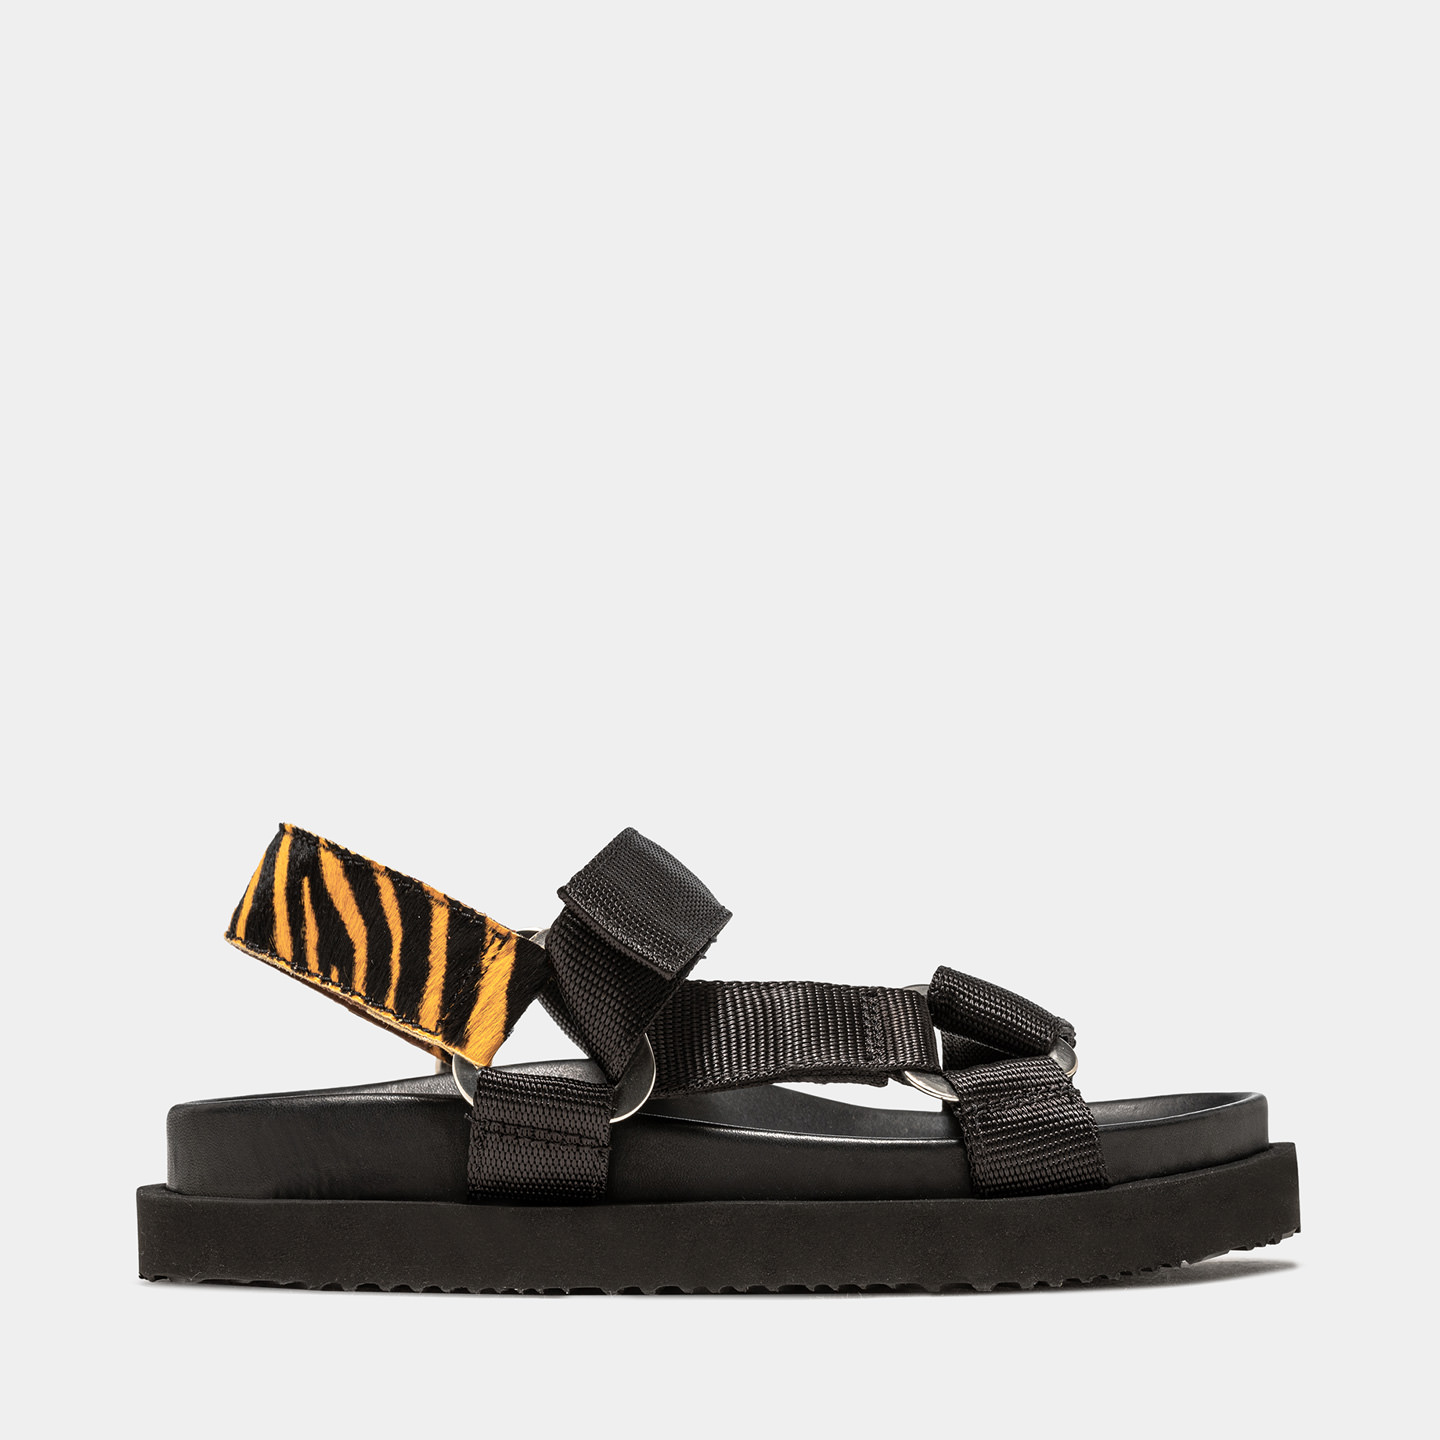 BUTTERO: ROULOTTE SANDALS IN NYLON AND PONY SKIN